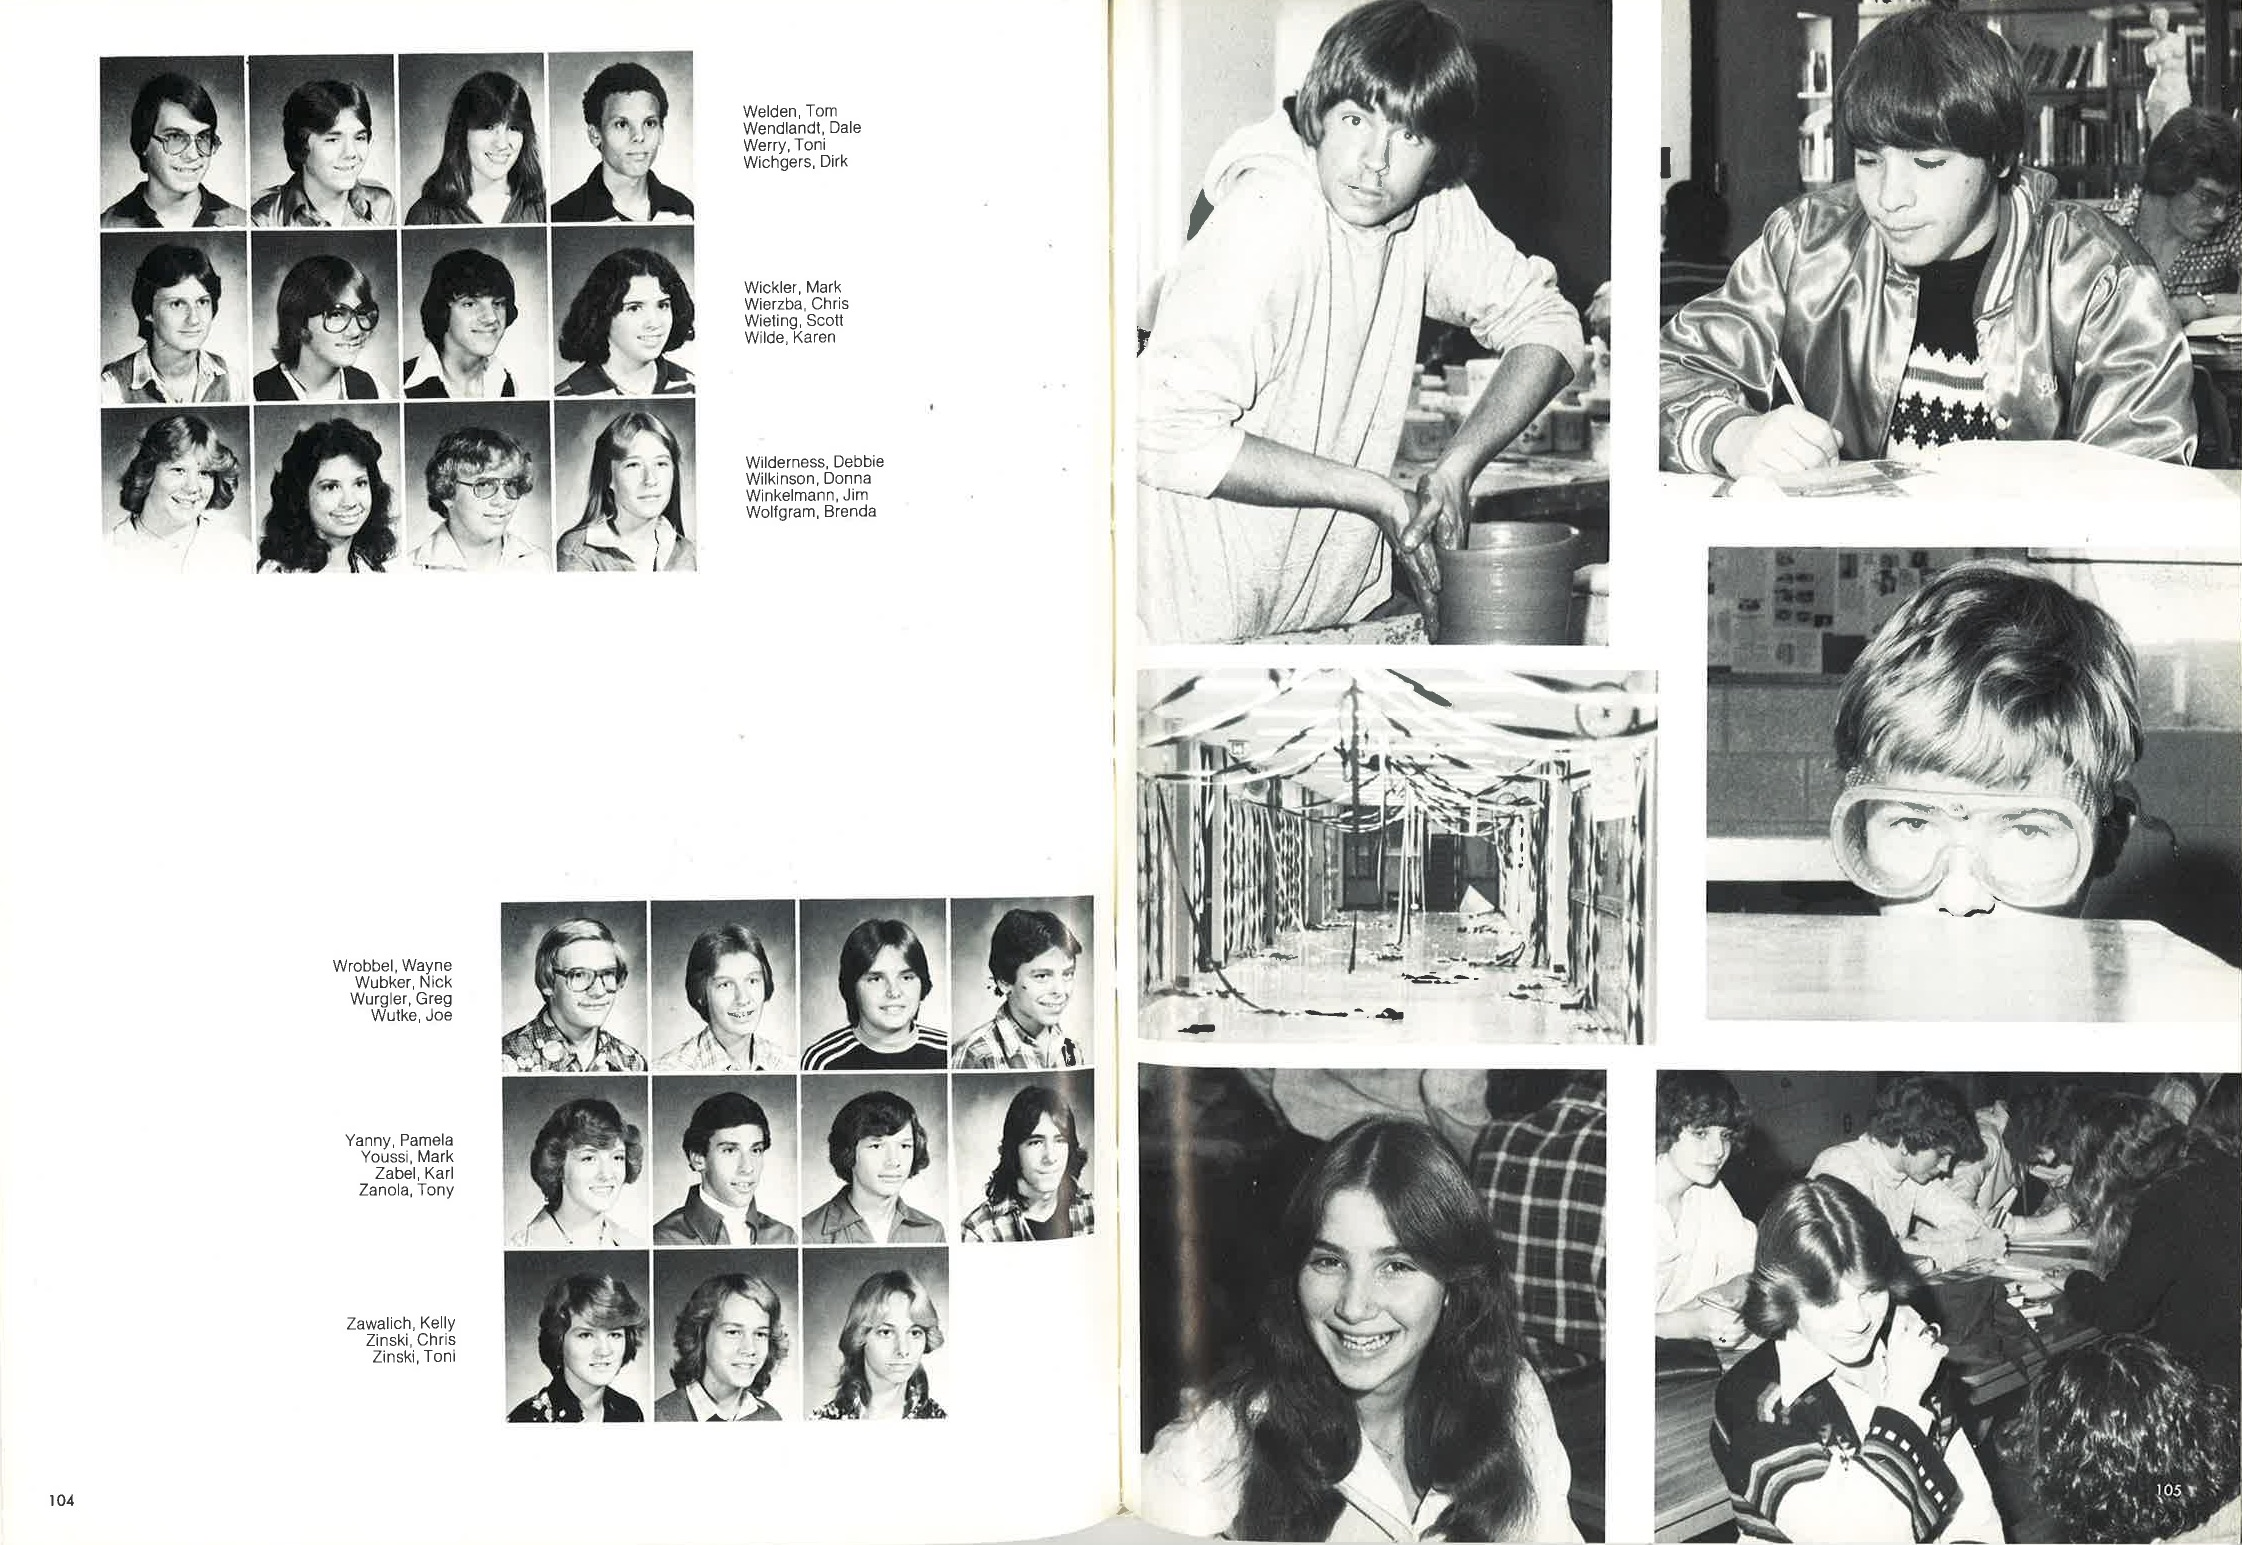 1980_Yearbook_104.jpg